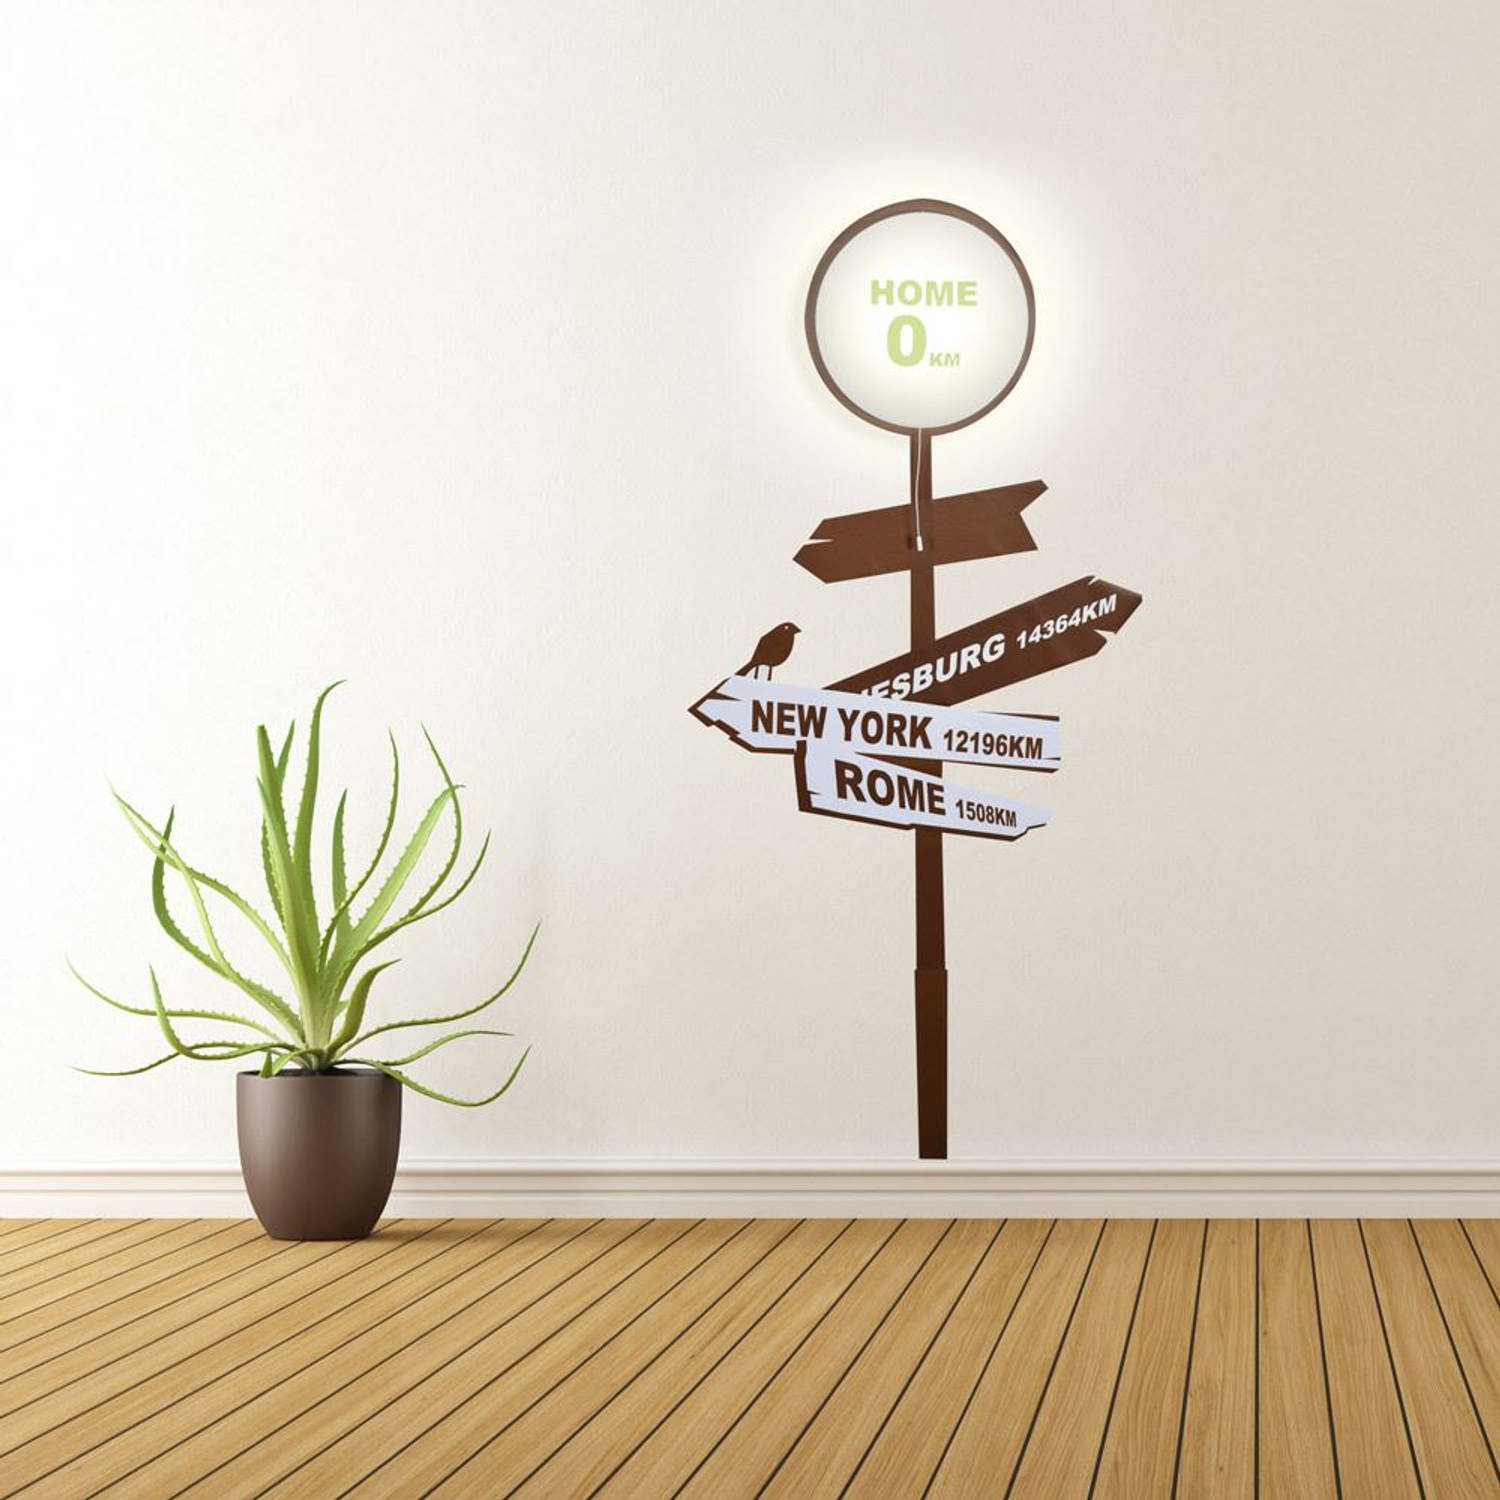 Home Sign Wall Light and Wall Sticker